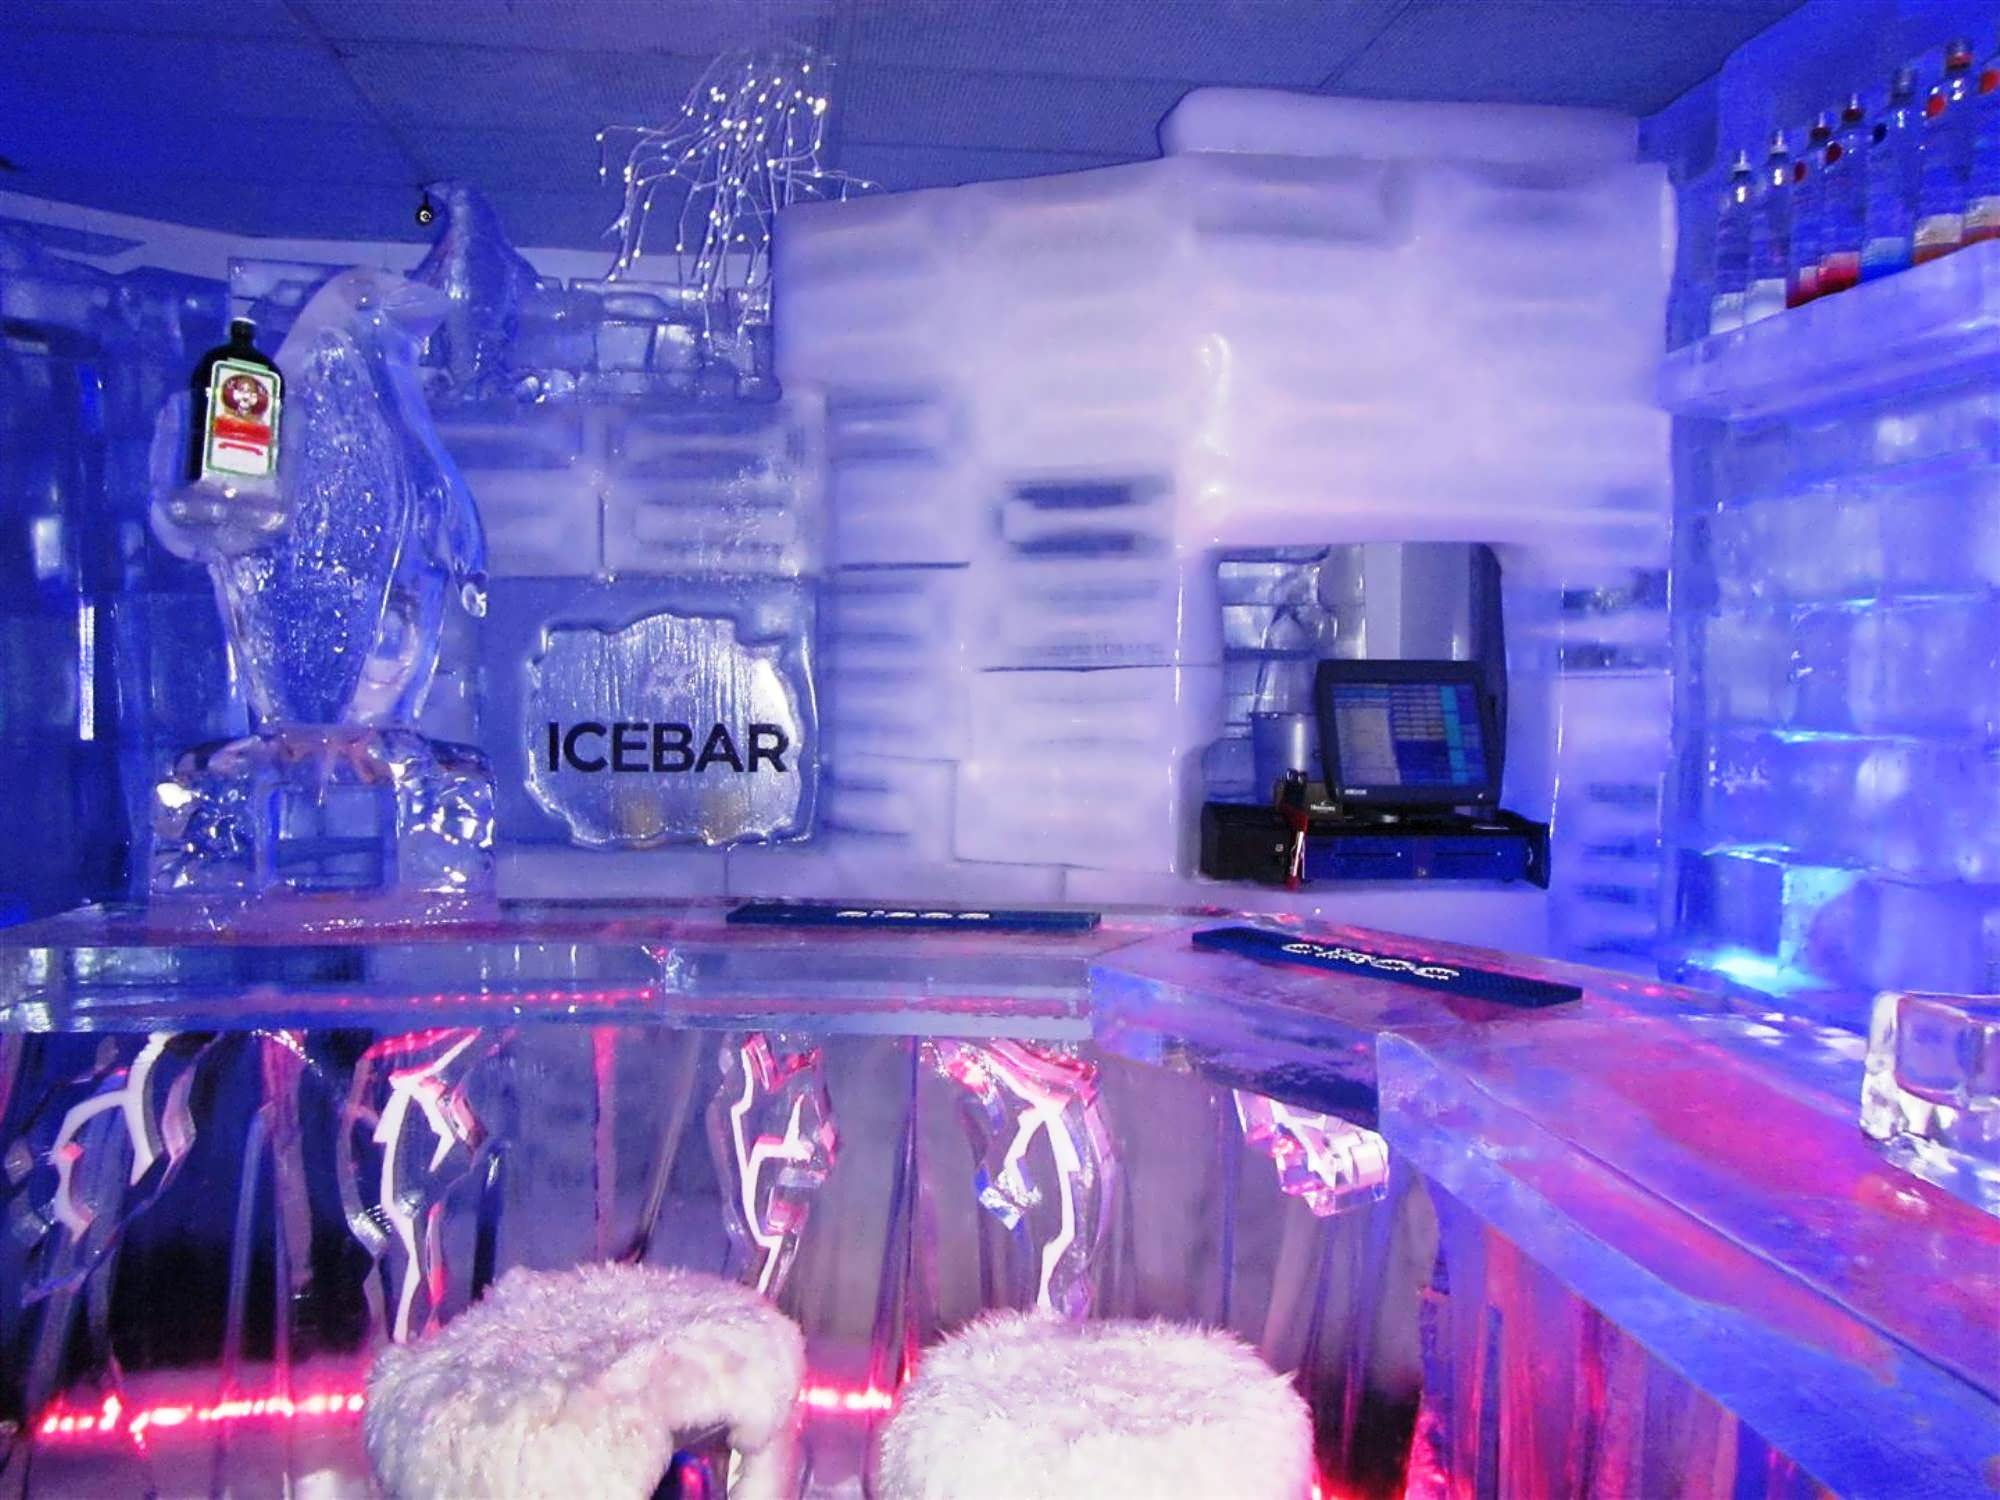 The Ice Bar - Things To Do In Orlando Besides Theme Parks